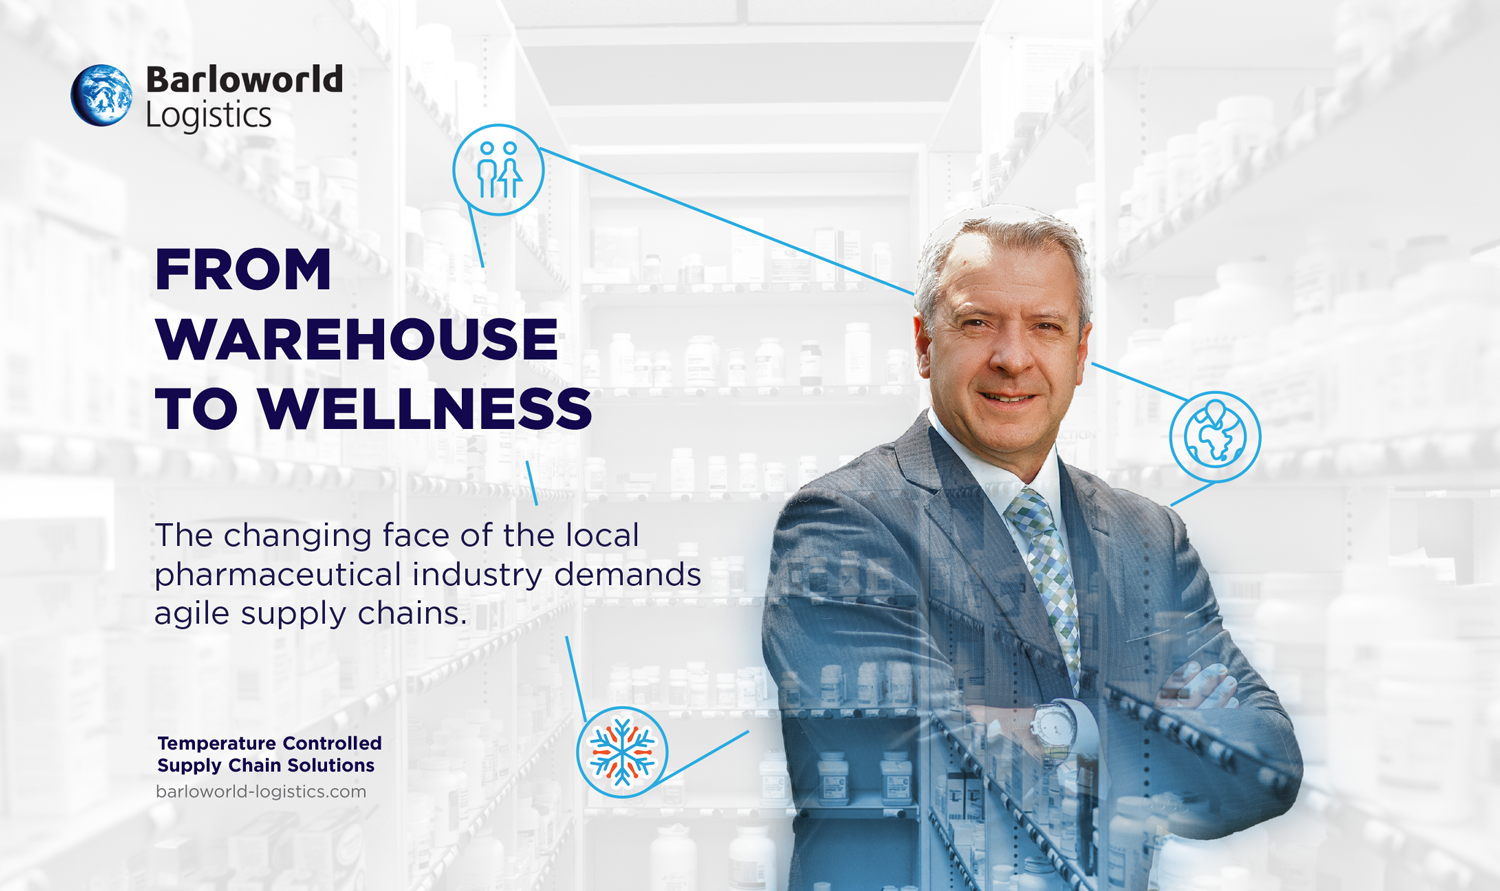 From warehouse to wellness